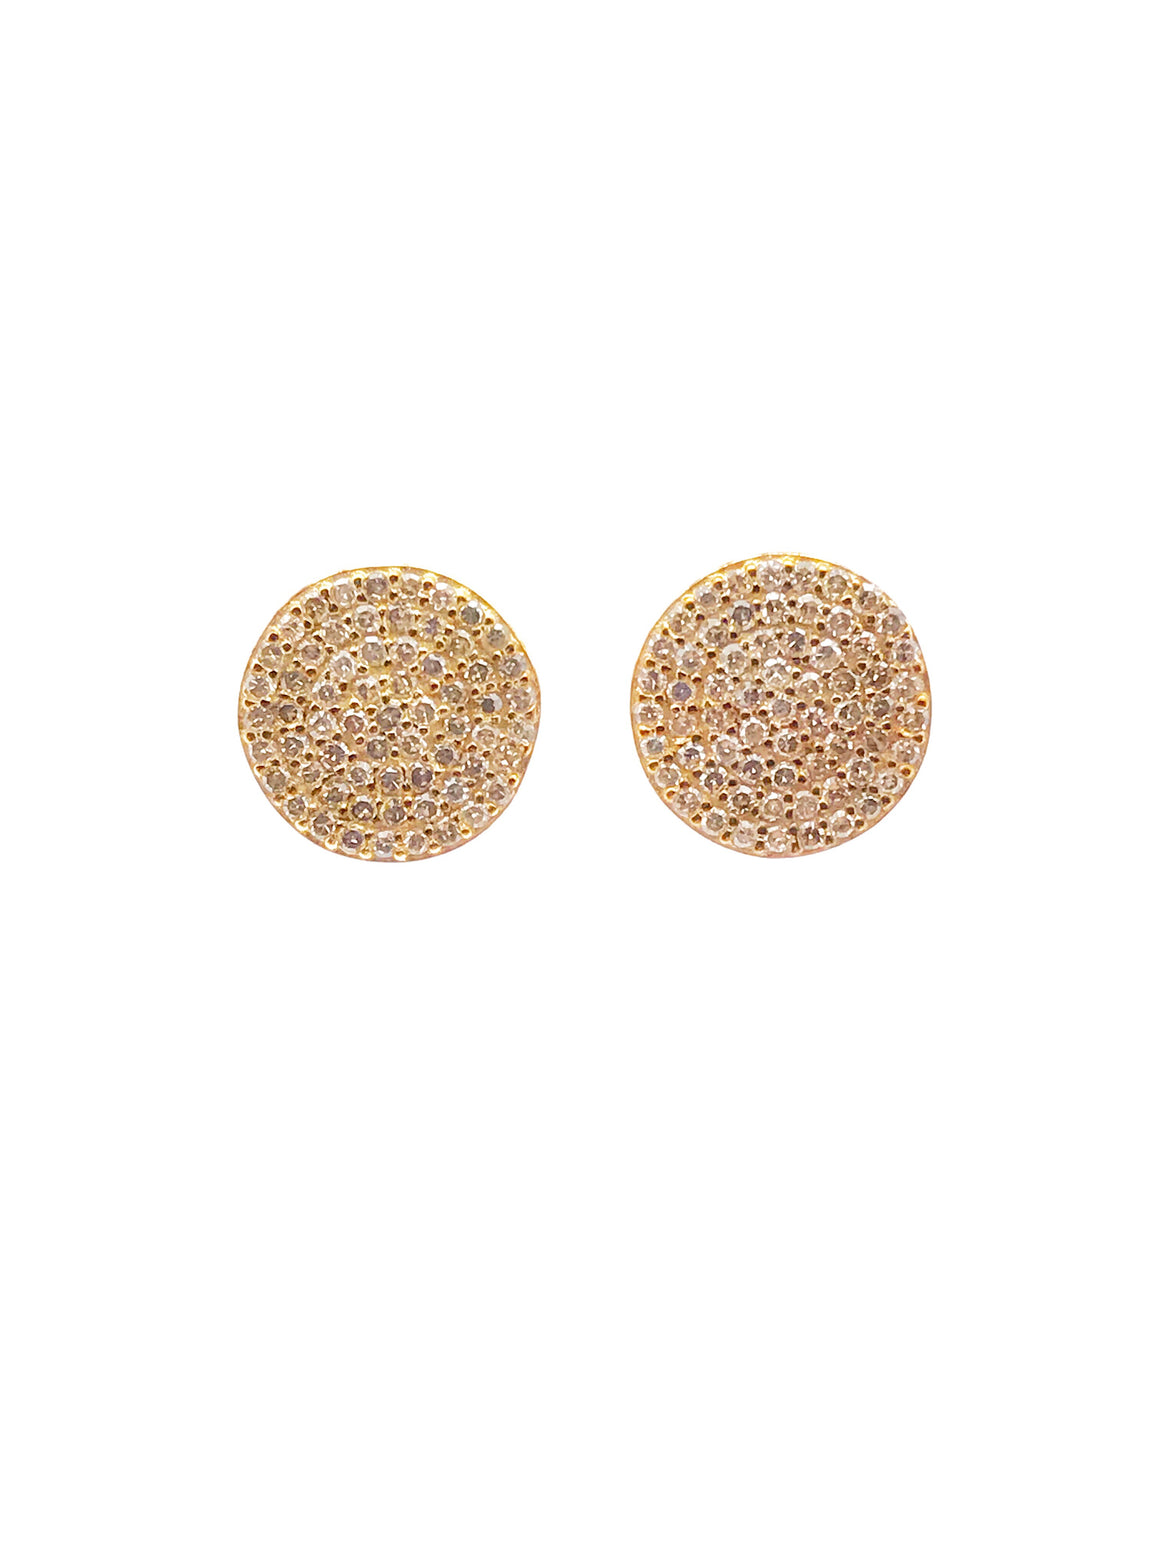 Ulka Rocks Warrenton diamond disc earrings in 14k gold